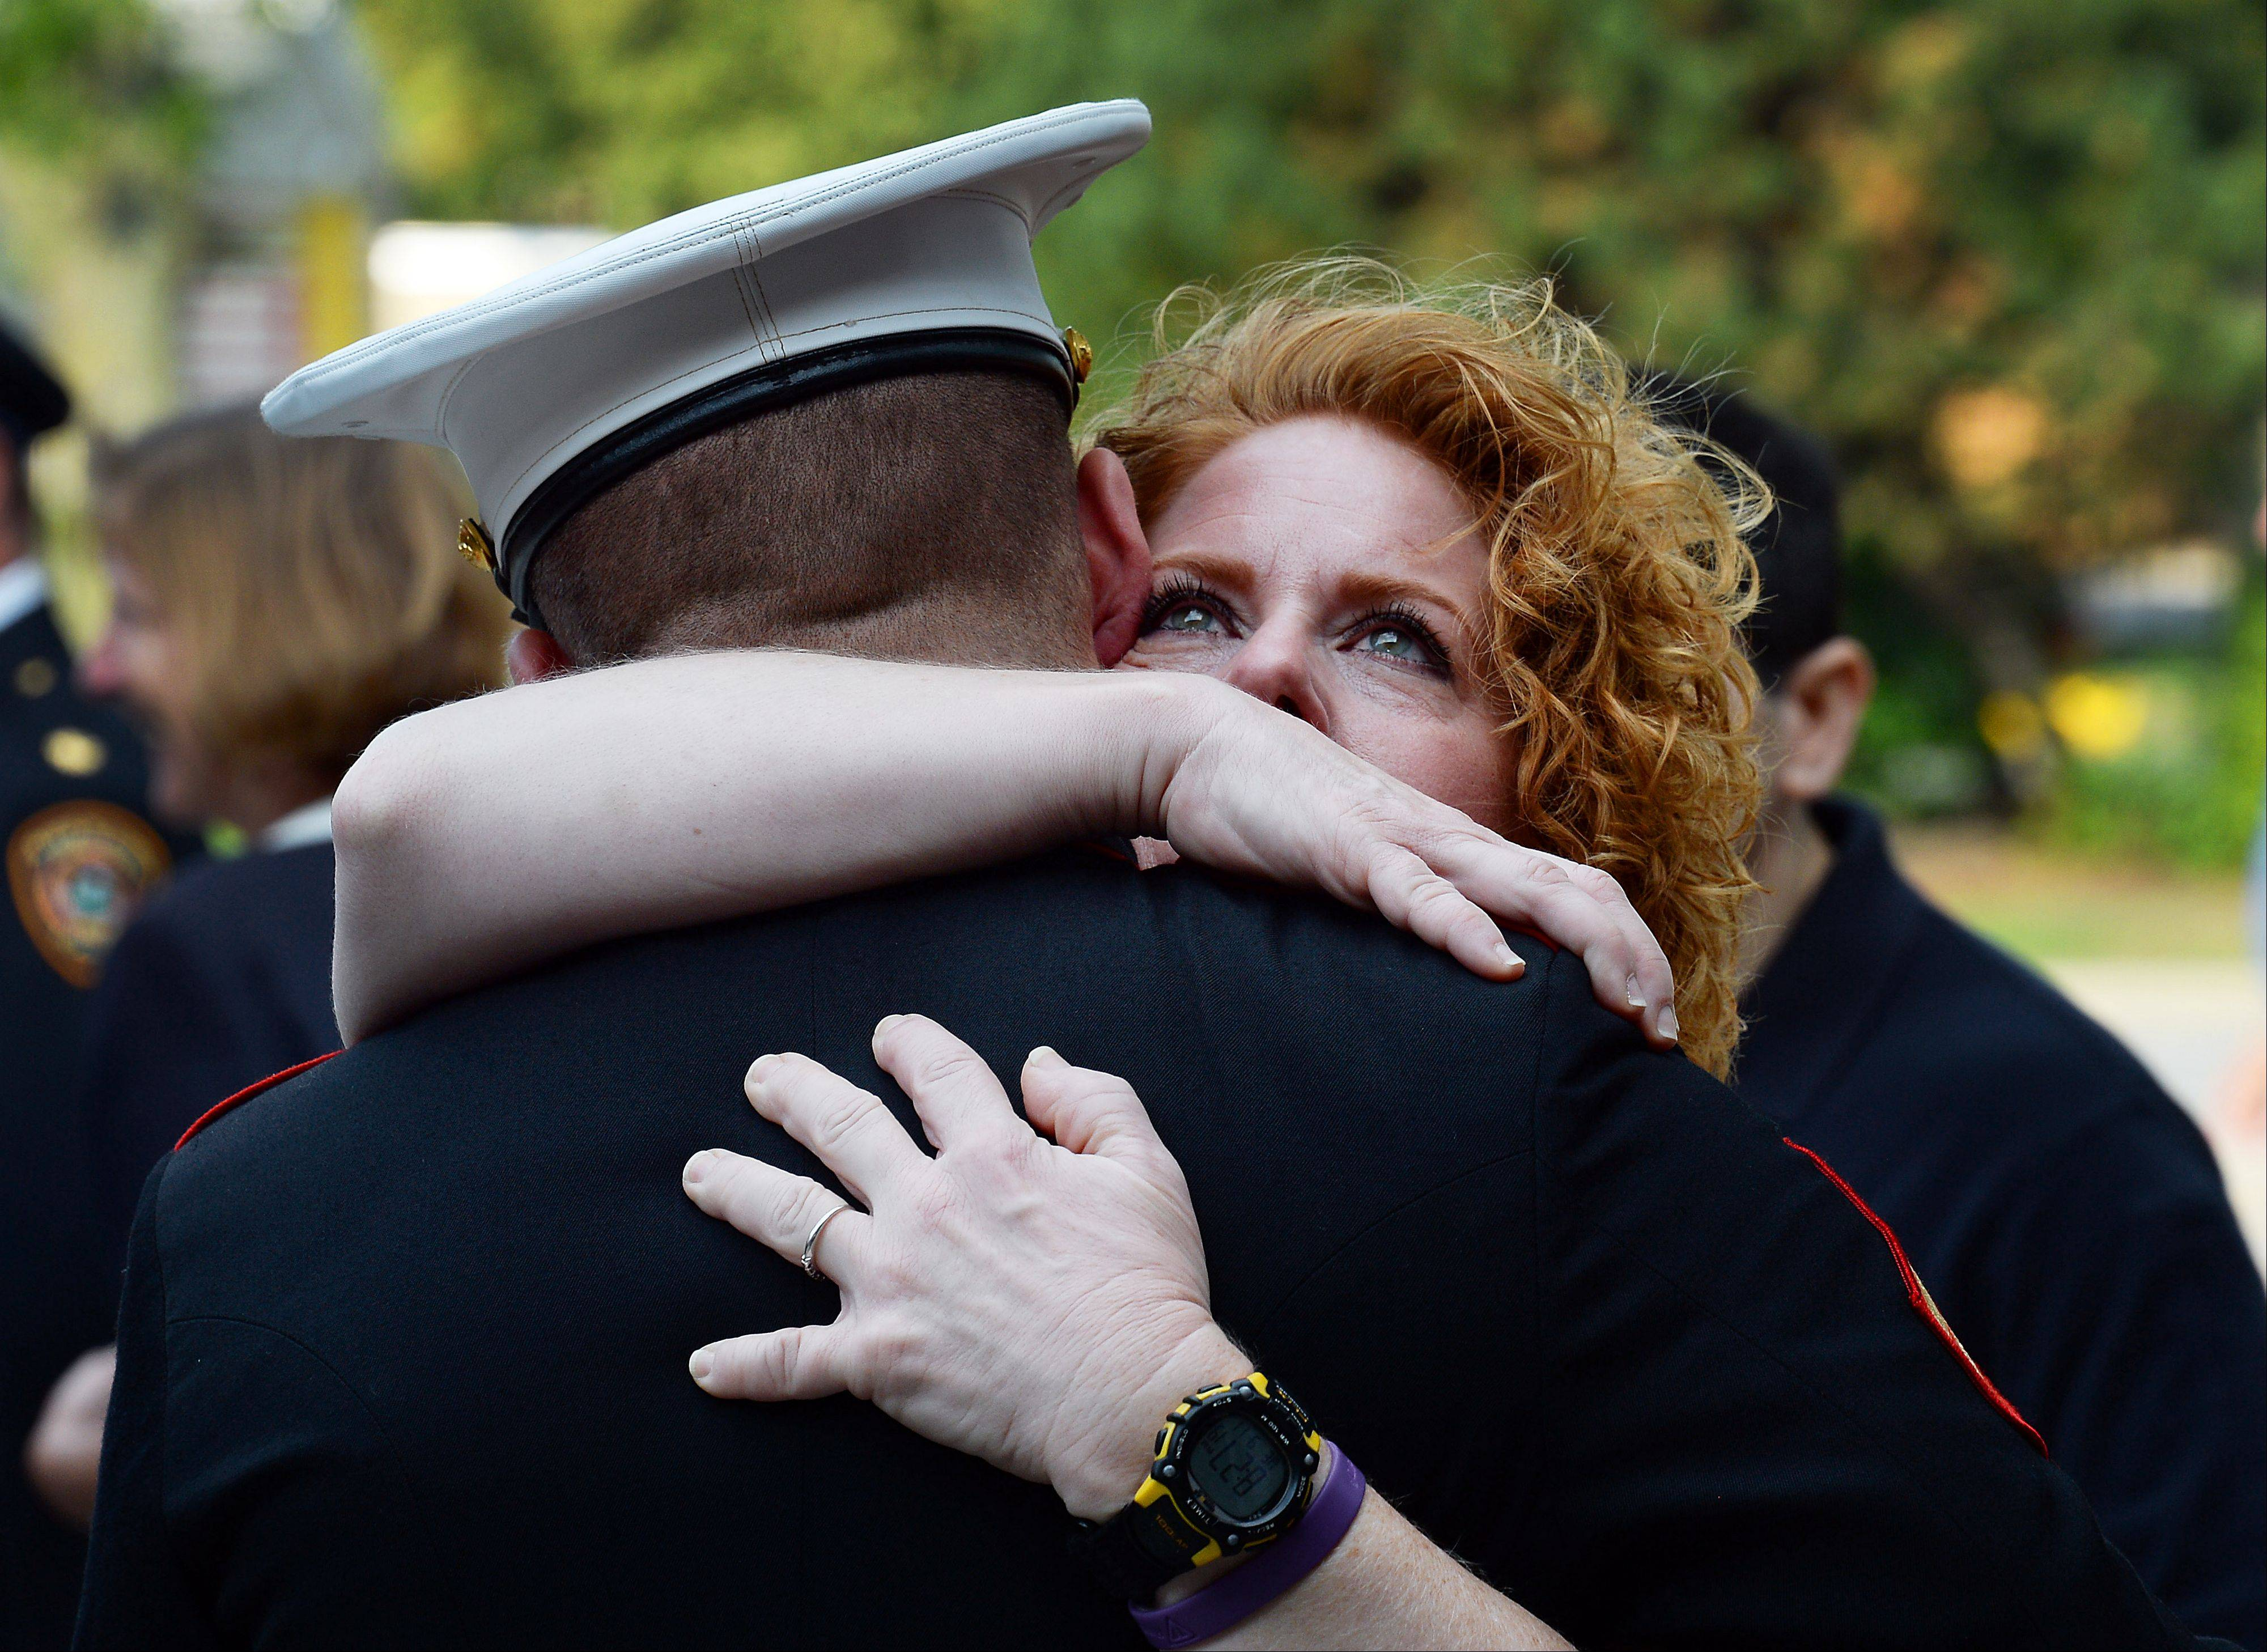 The trumpet of Marine Marshal Macri of Hoffman Estates played Taps and in return his mom Stacey gives him a hug as they honored the fallen at the Sept. 11 memorial and Patriot Day ceremony at fire station 1 on Wednesday.